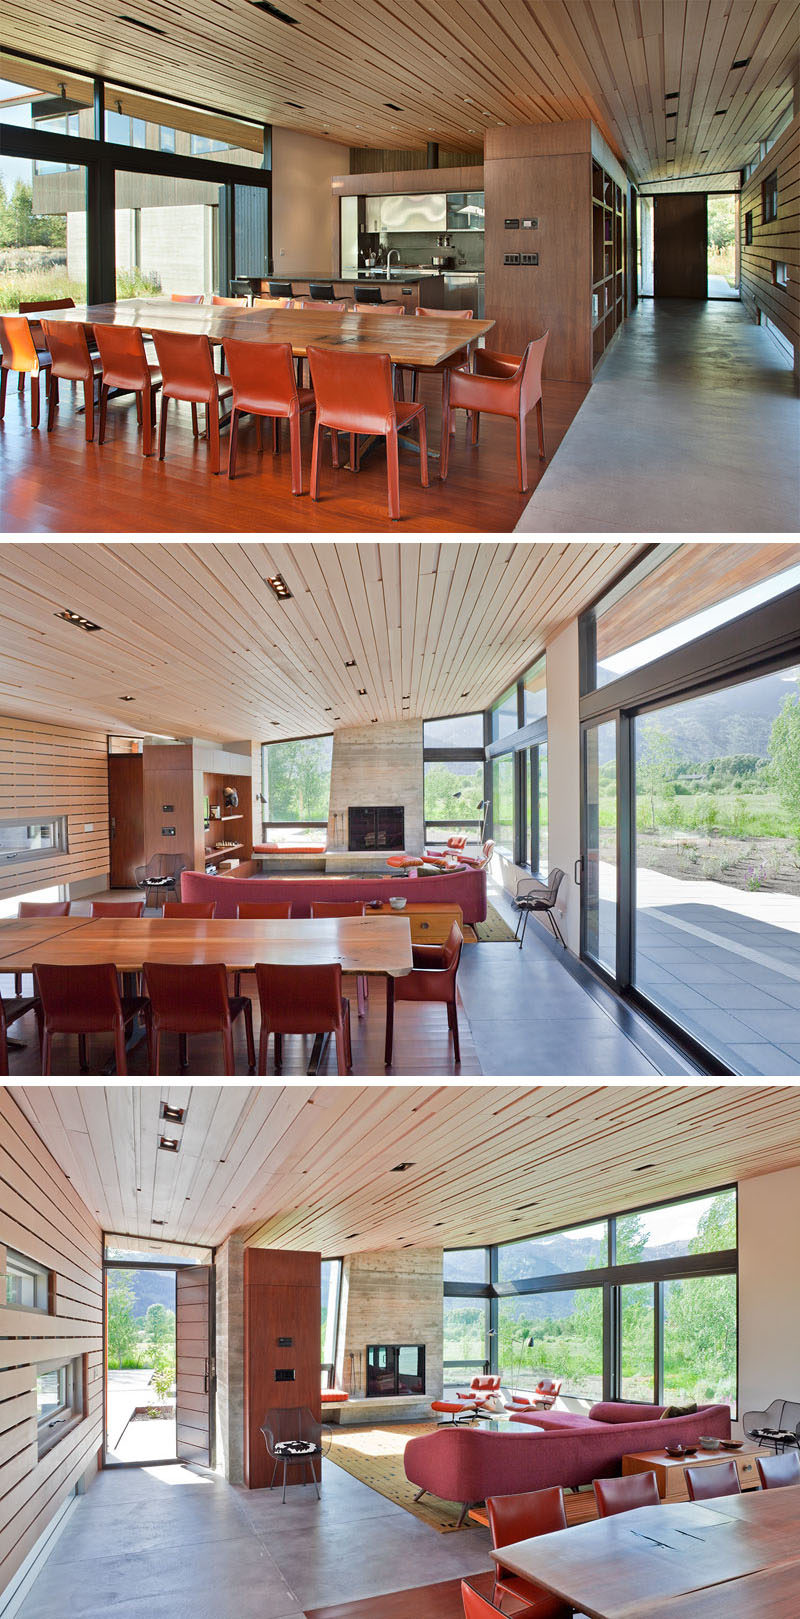 The wood overhang featured on the exterior of this modern house continues inside and becomes the ceiling of the kitchen, living and dining area. At one end of the room is a fireplace with a concrete surround that's flanked on either side by floor-to-ceiling windows.